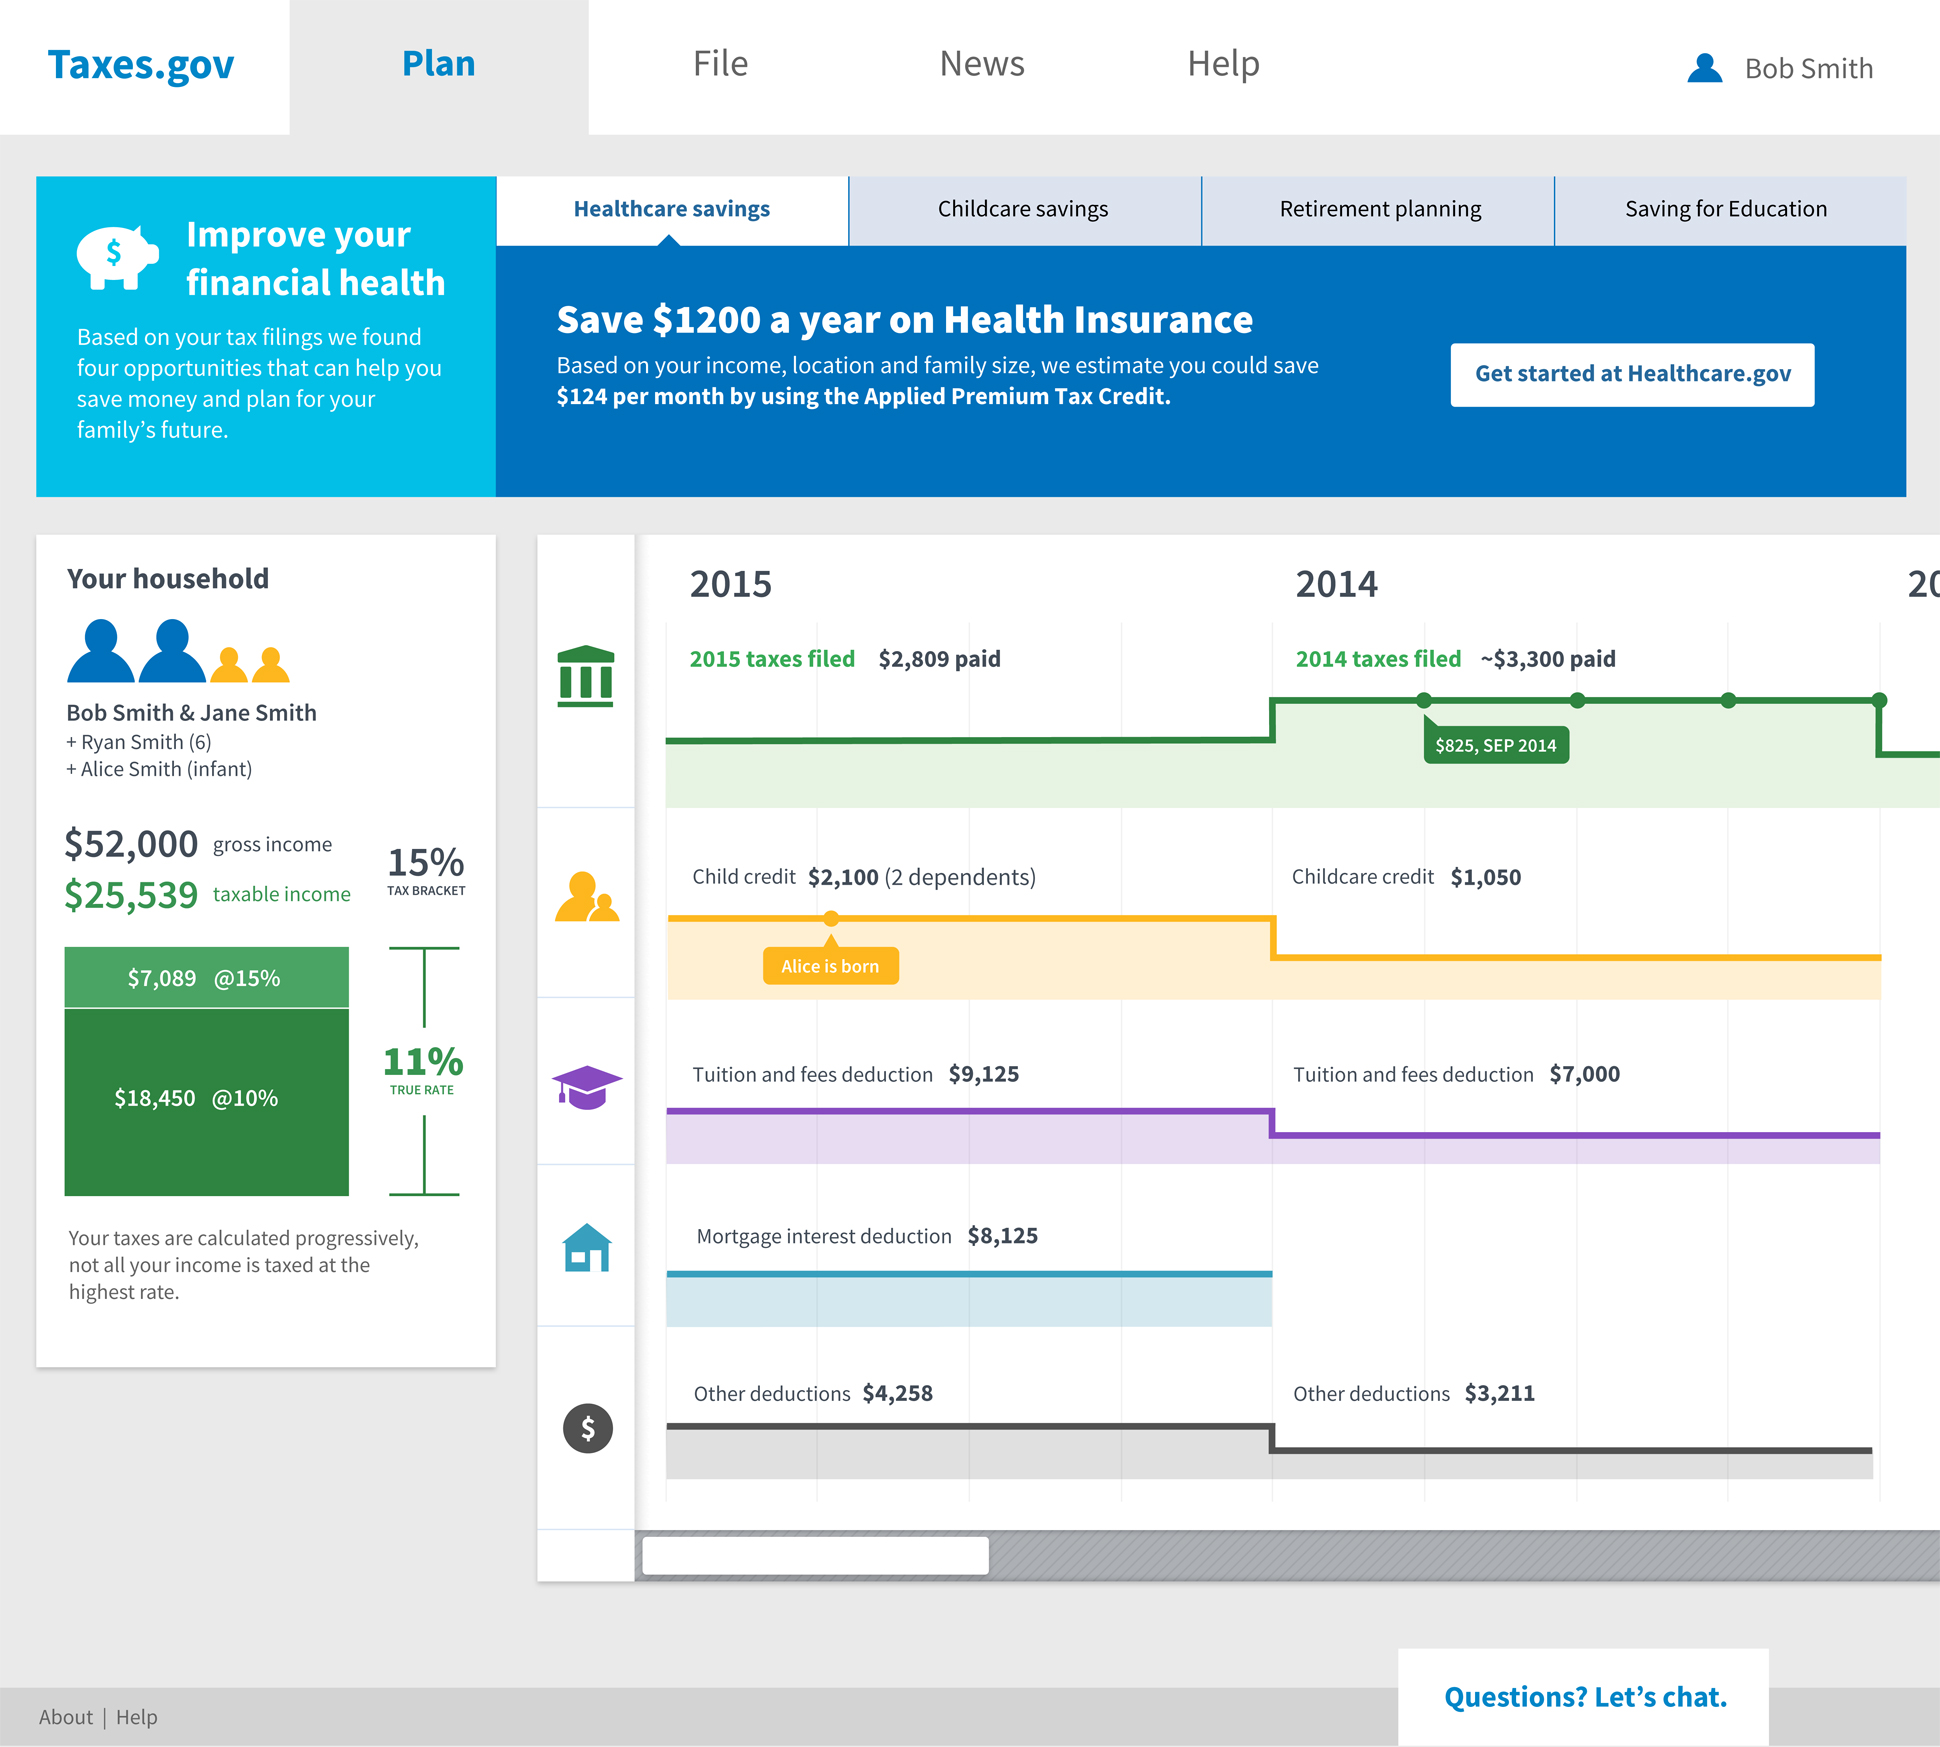 A page from a tax design challenge submission. A design for Taxes.gov is show. Summaries of each tax year and the user profile fill the page. Helpful tools for financial planning are included across the top of the page.